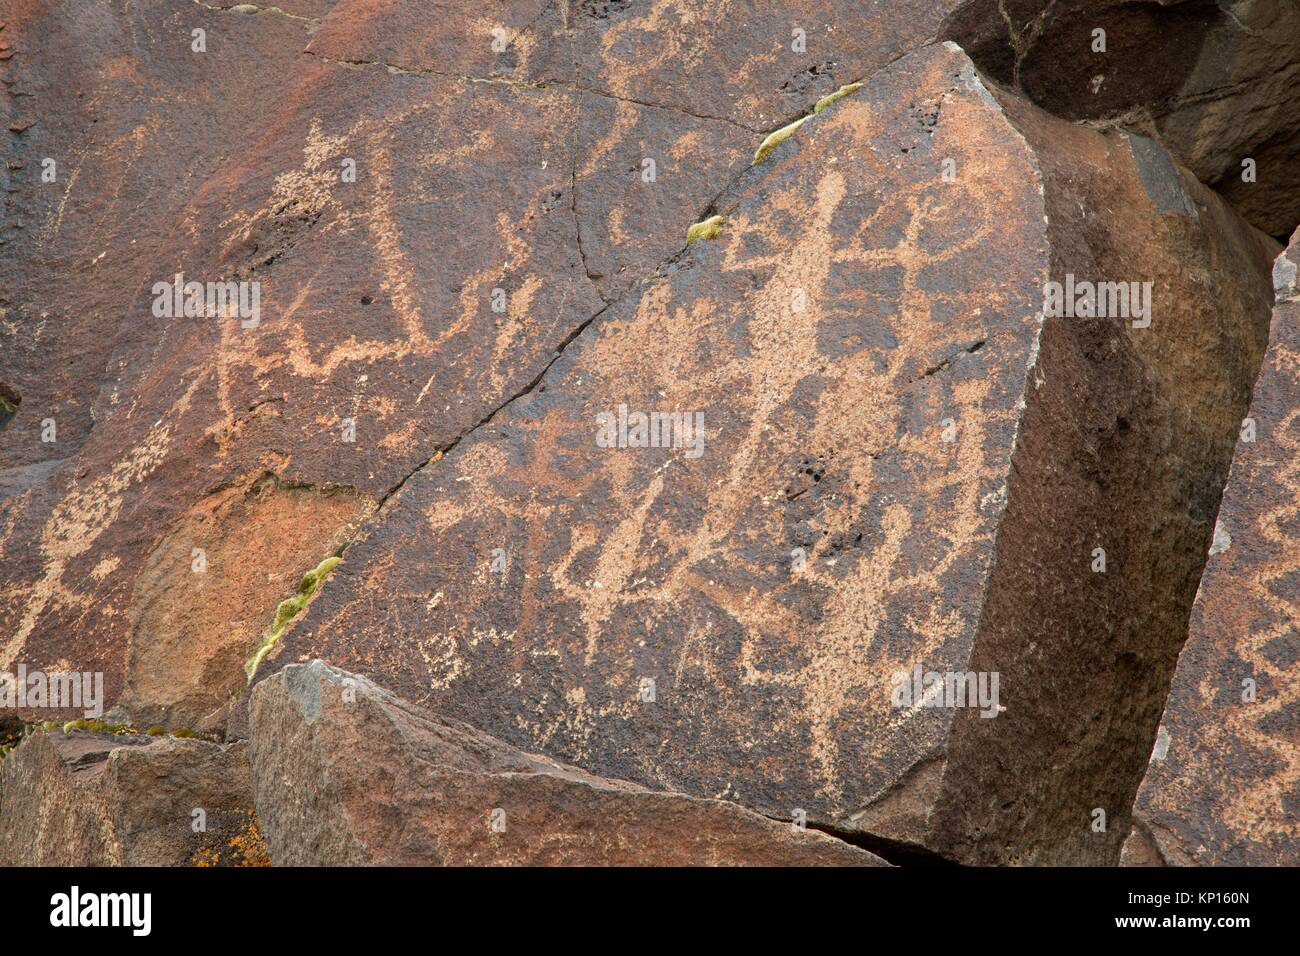 Greaser Petroglyphs, Lakeview District Bureau of Land Management, Oregon. - Stock Image